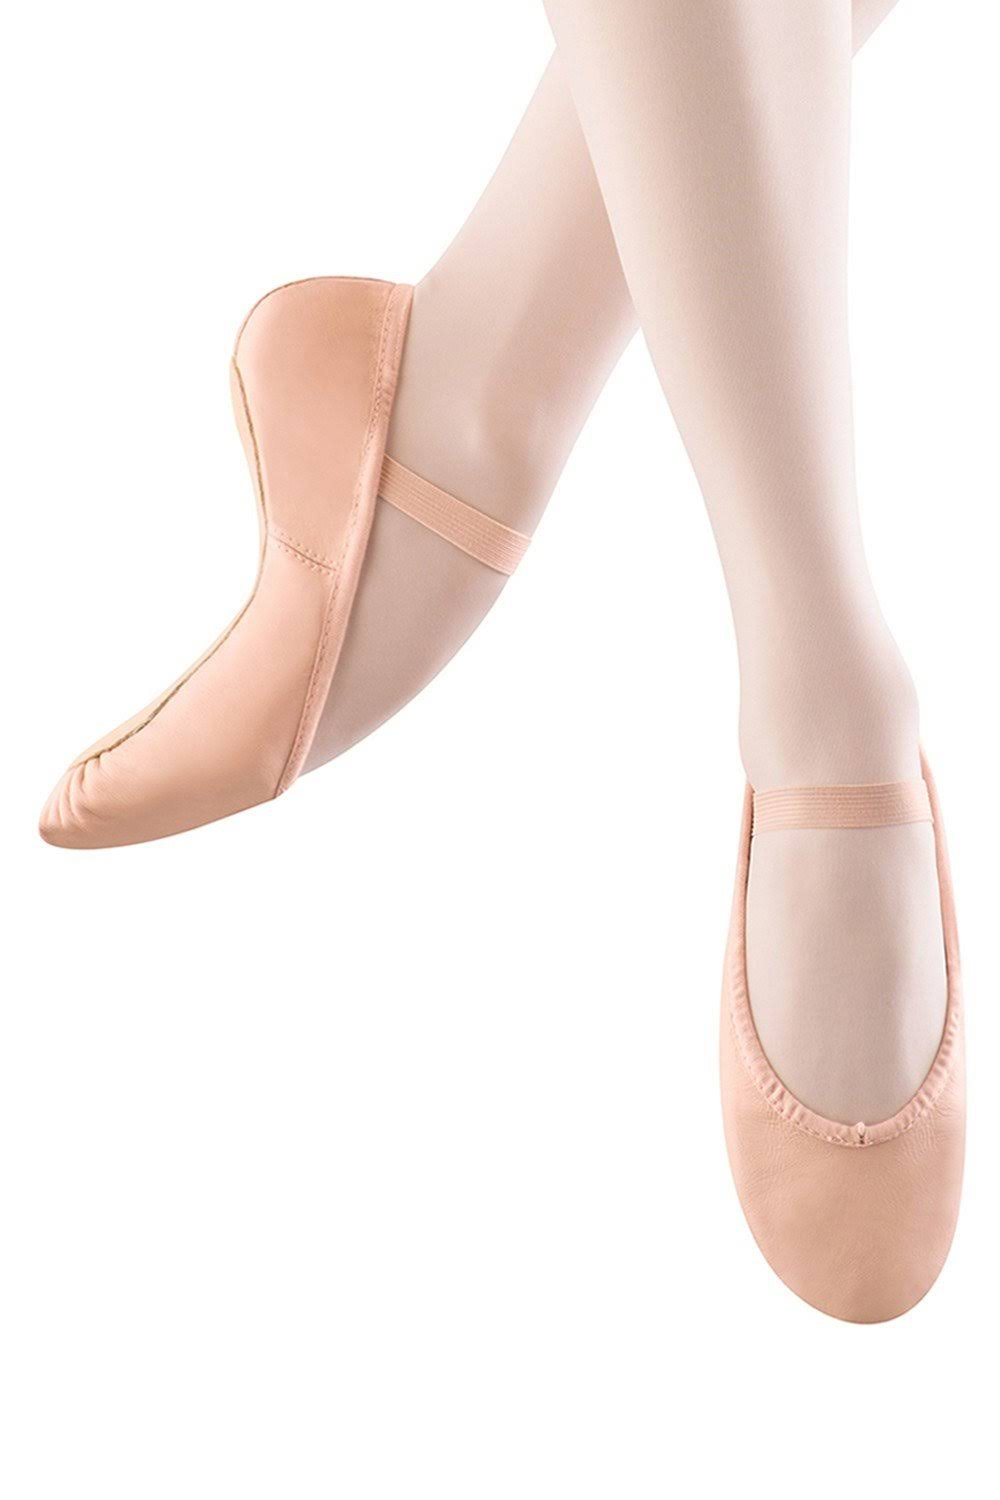 Bloch Dance Dansoft Ballet Slippers